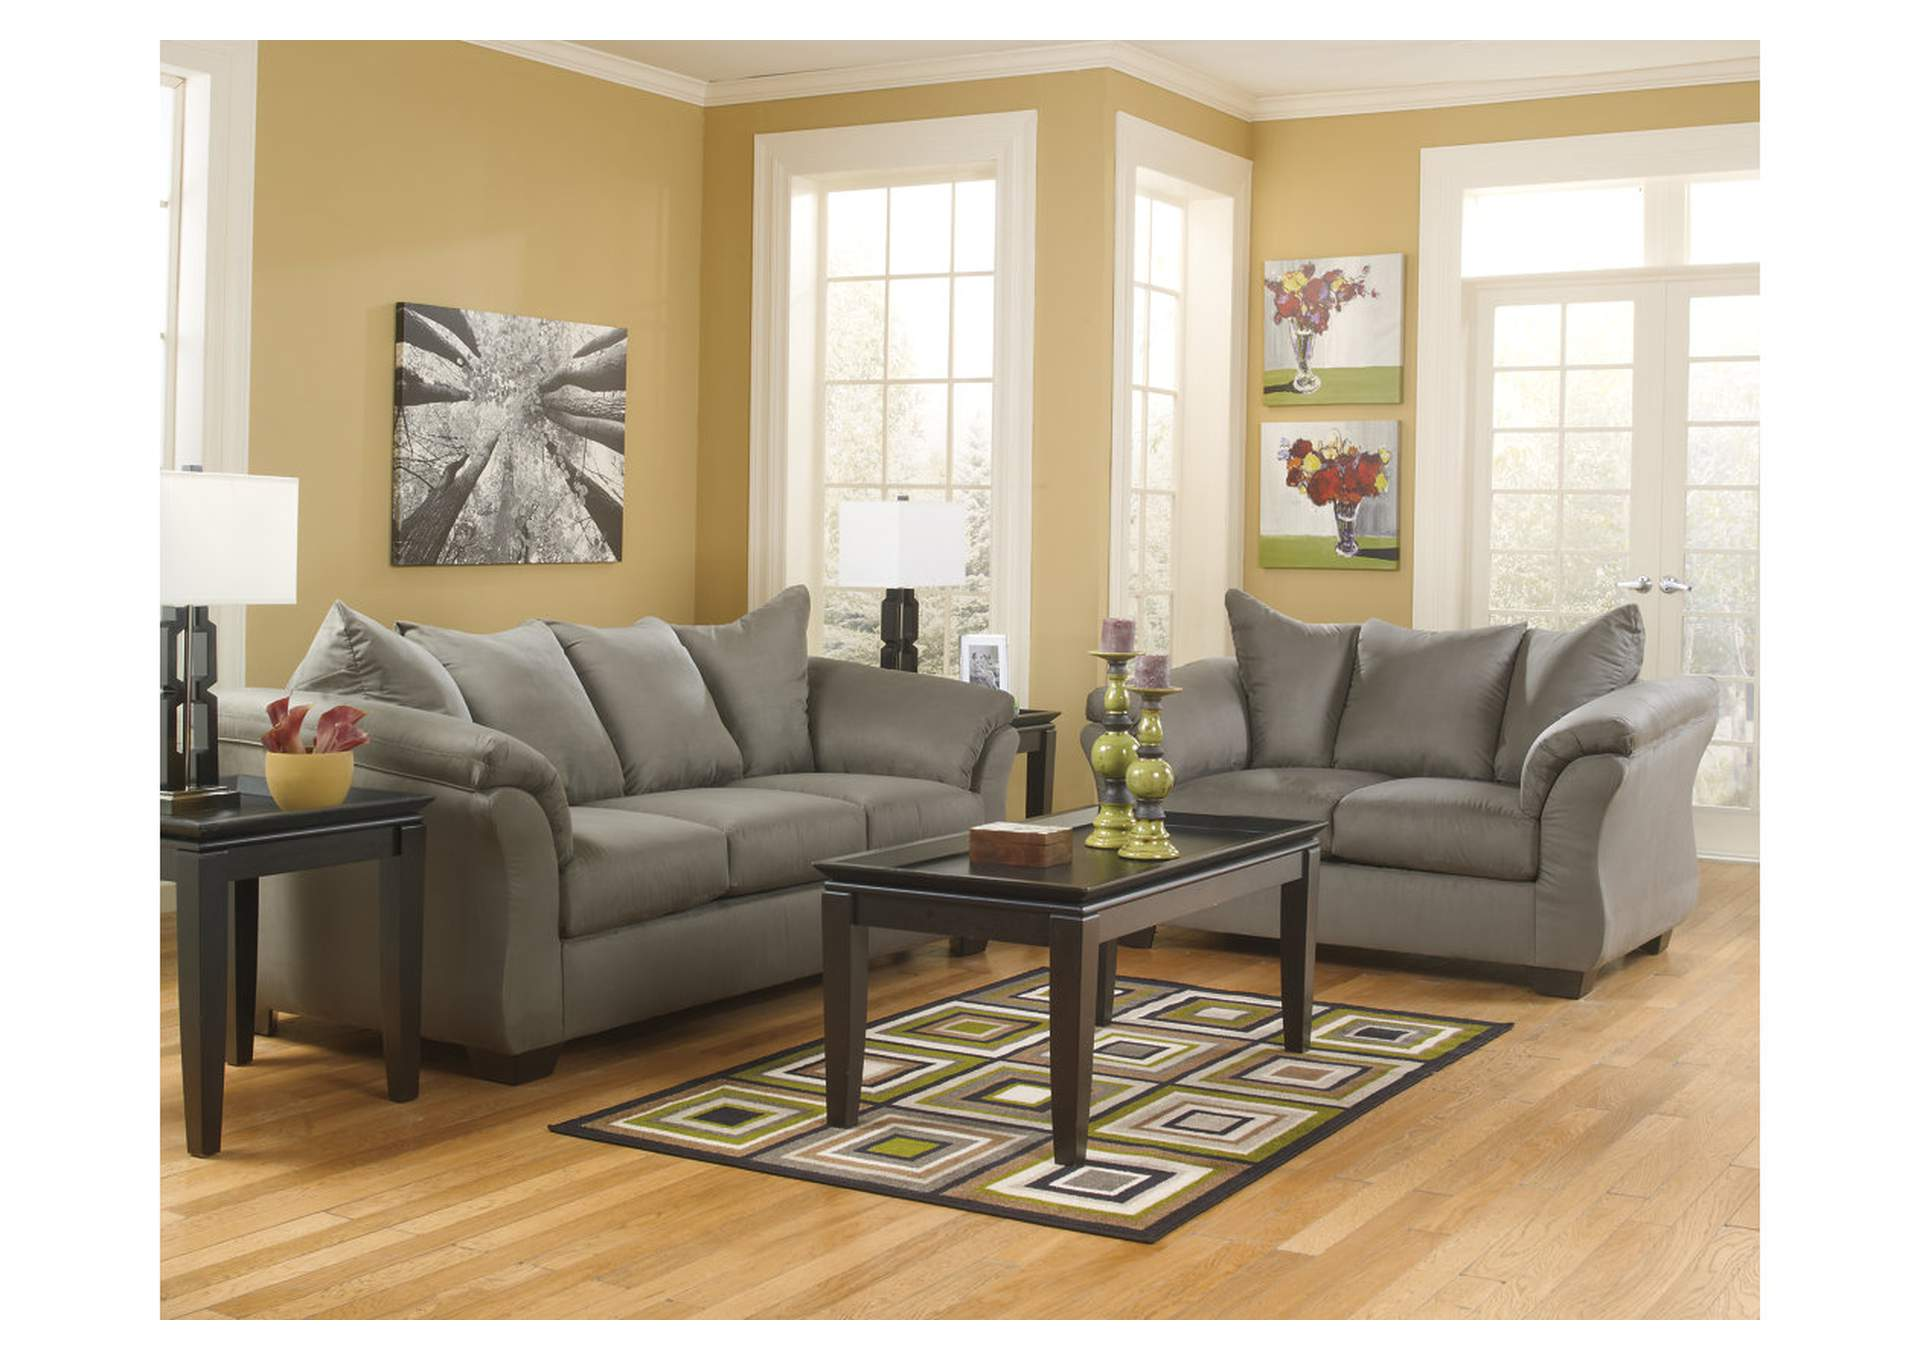 Long Island Discount Furniture